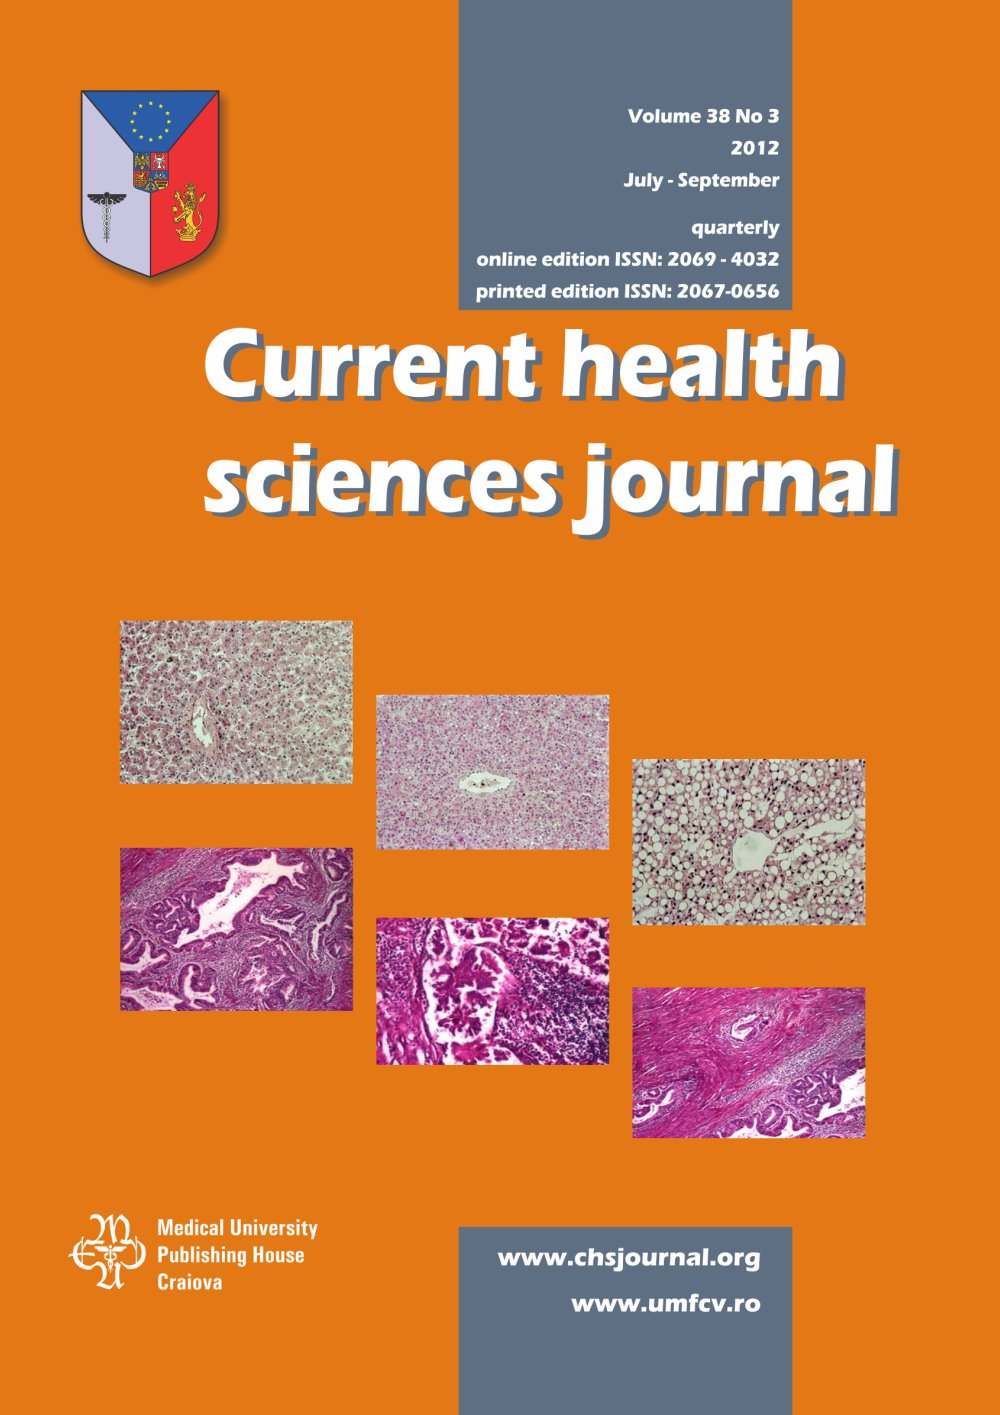 Current Health Sciences Journal, vol. 38 no. 3, 2012